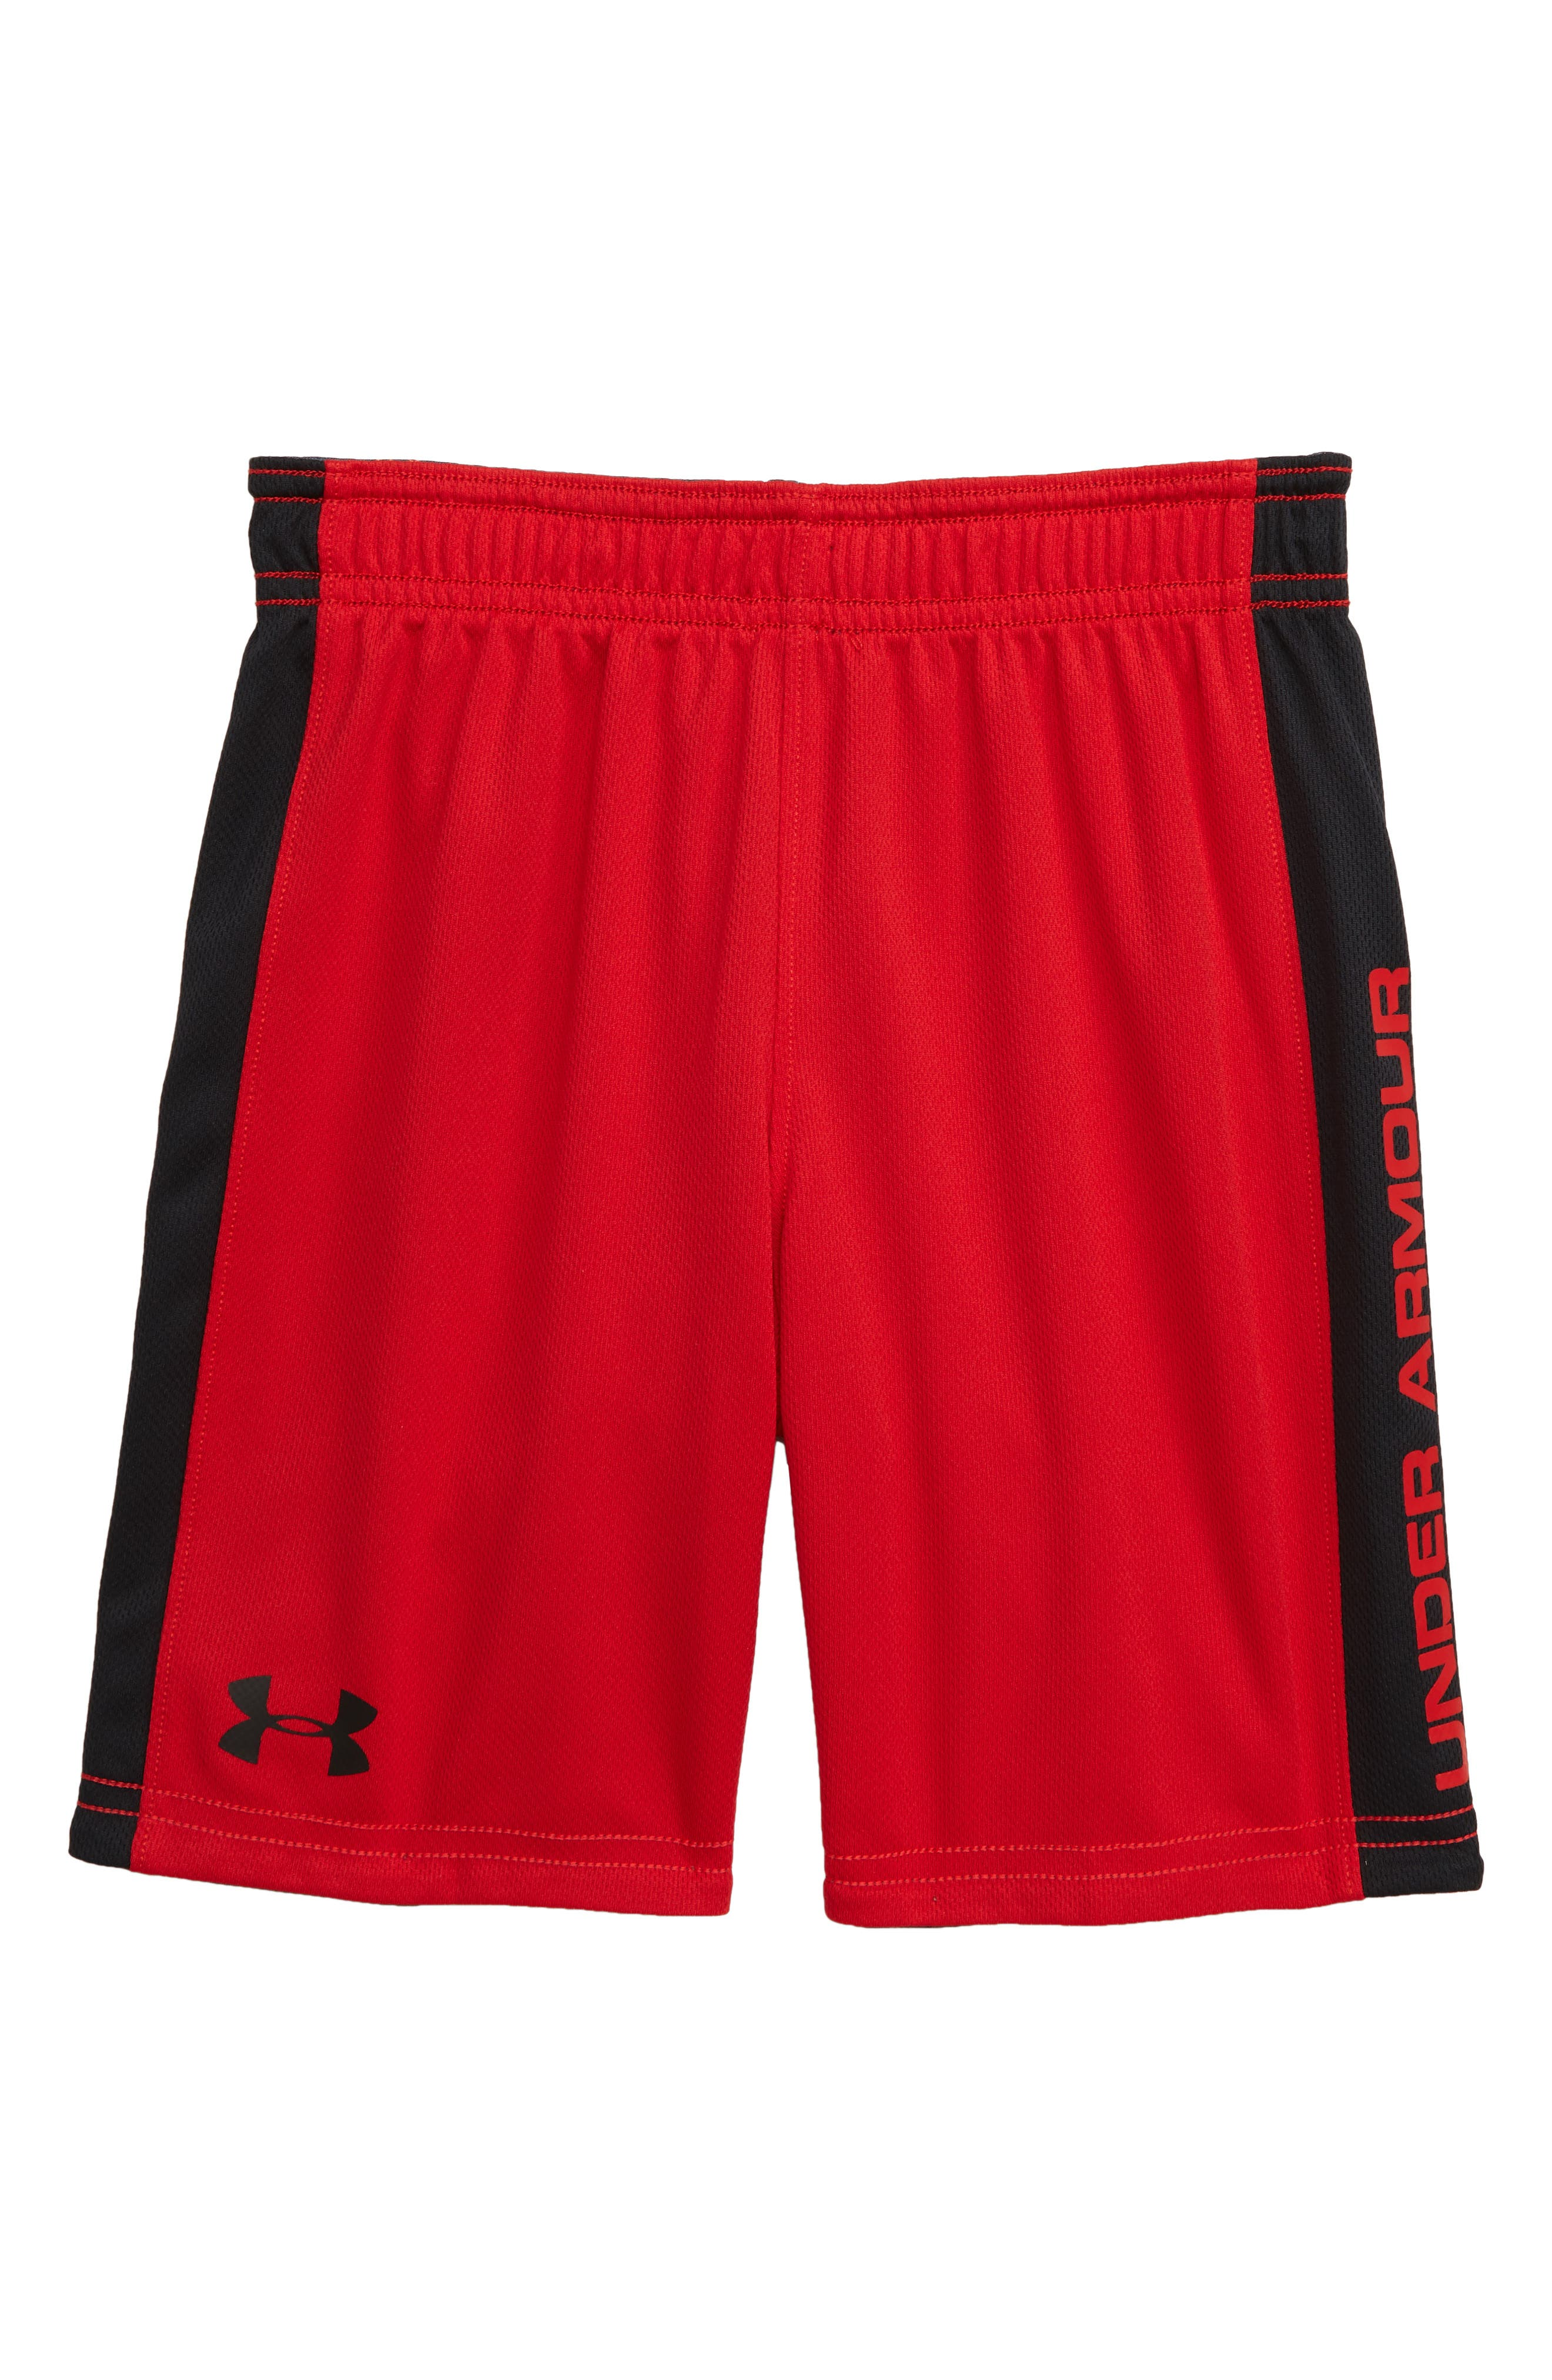 UNDER ARMOUR, Lined Up HeatGear<sup>®</sup> Reversible Shorts, Alternate thumbnail 2, color, PITCH GRAY